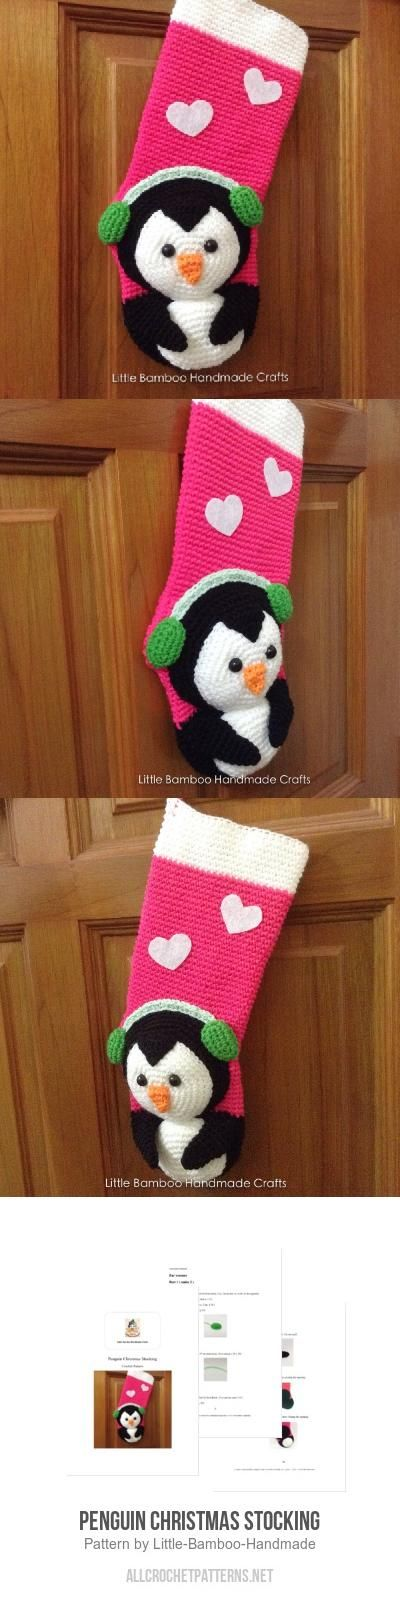 Penguin Christmas Stocking crochet pattern by Little Bamboo Handmade ...